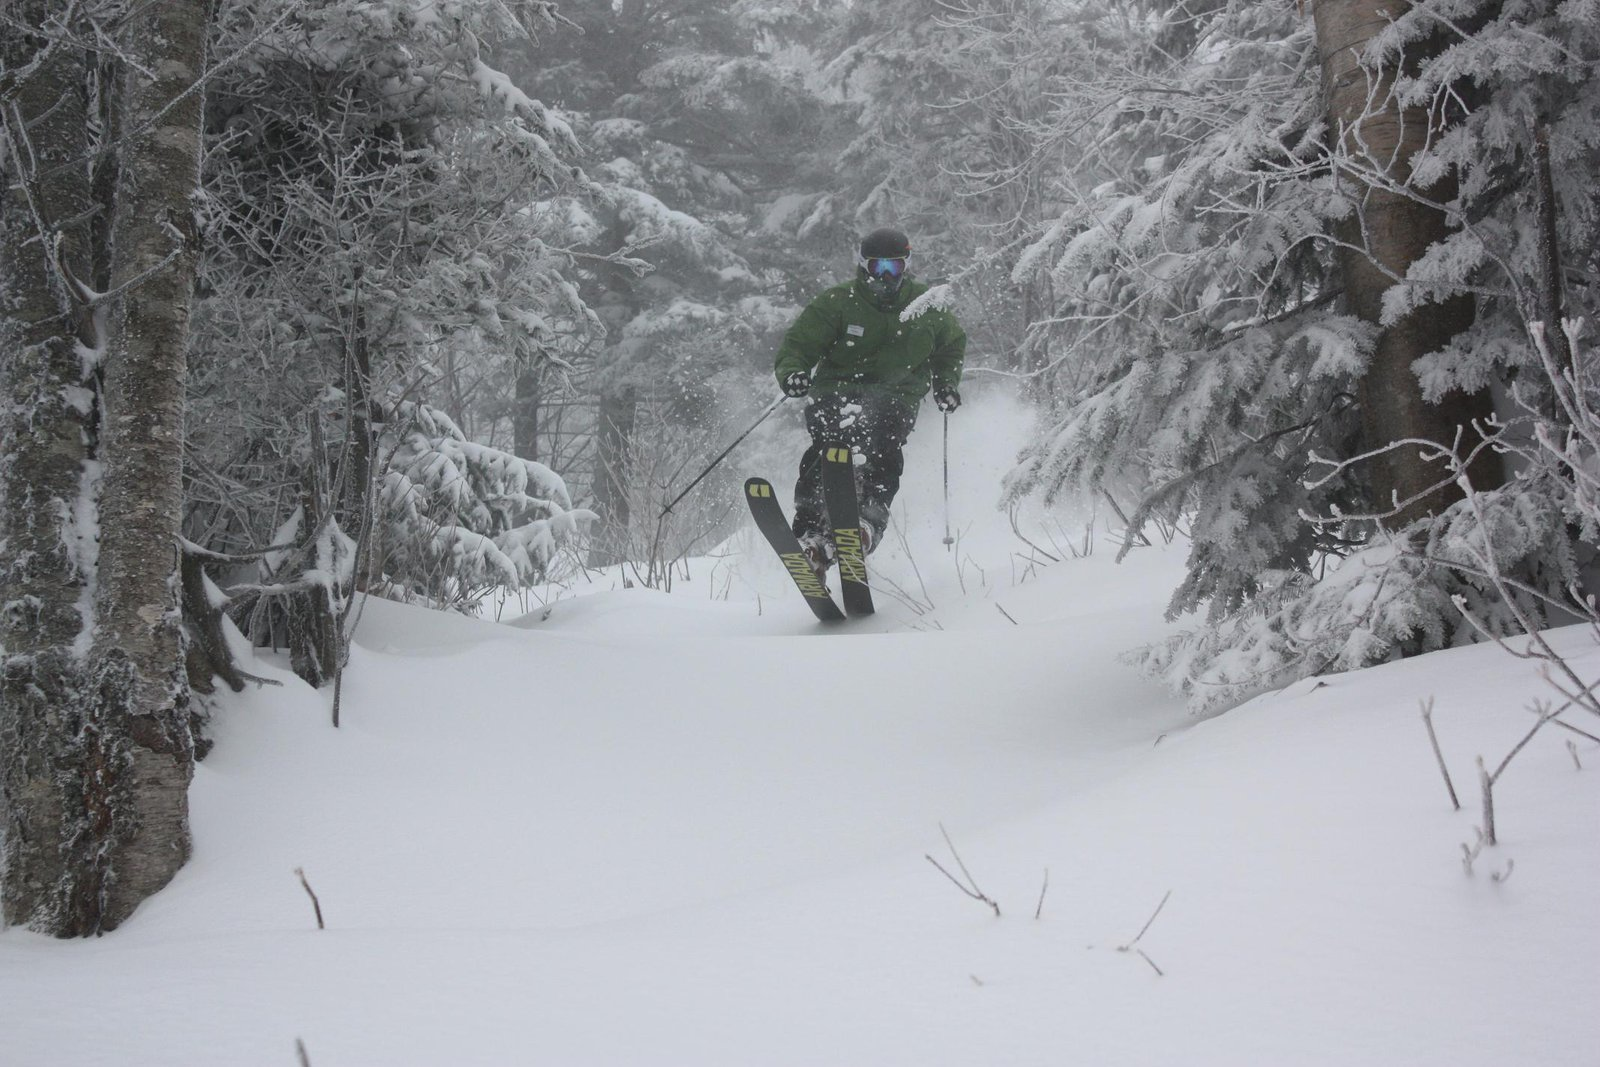 Bounding through pow